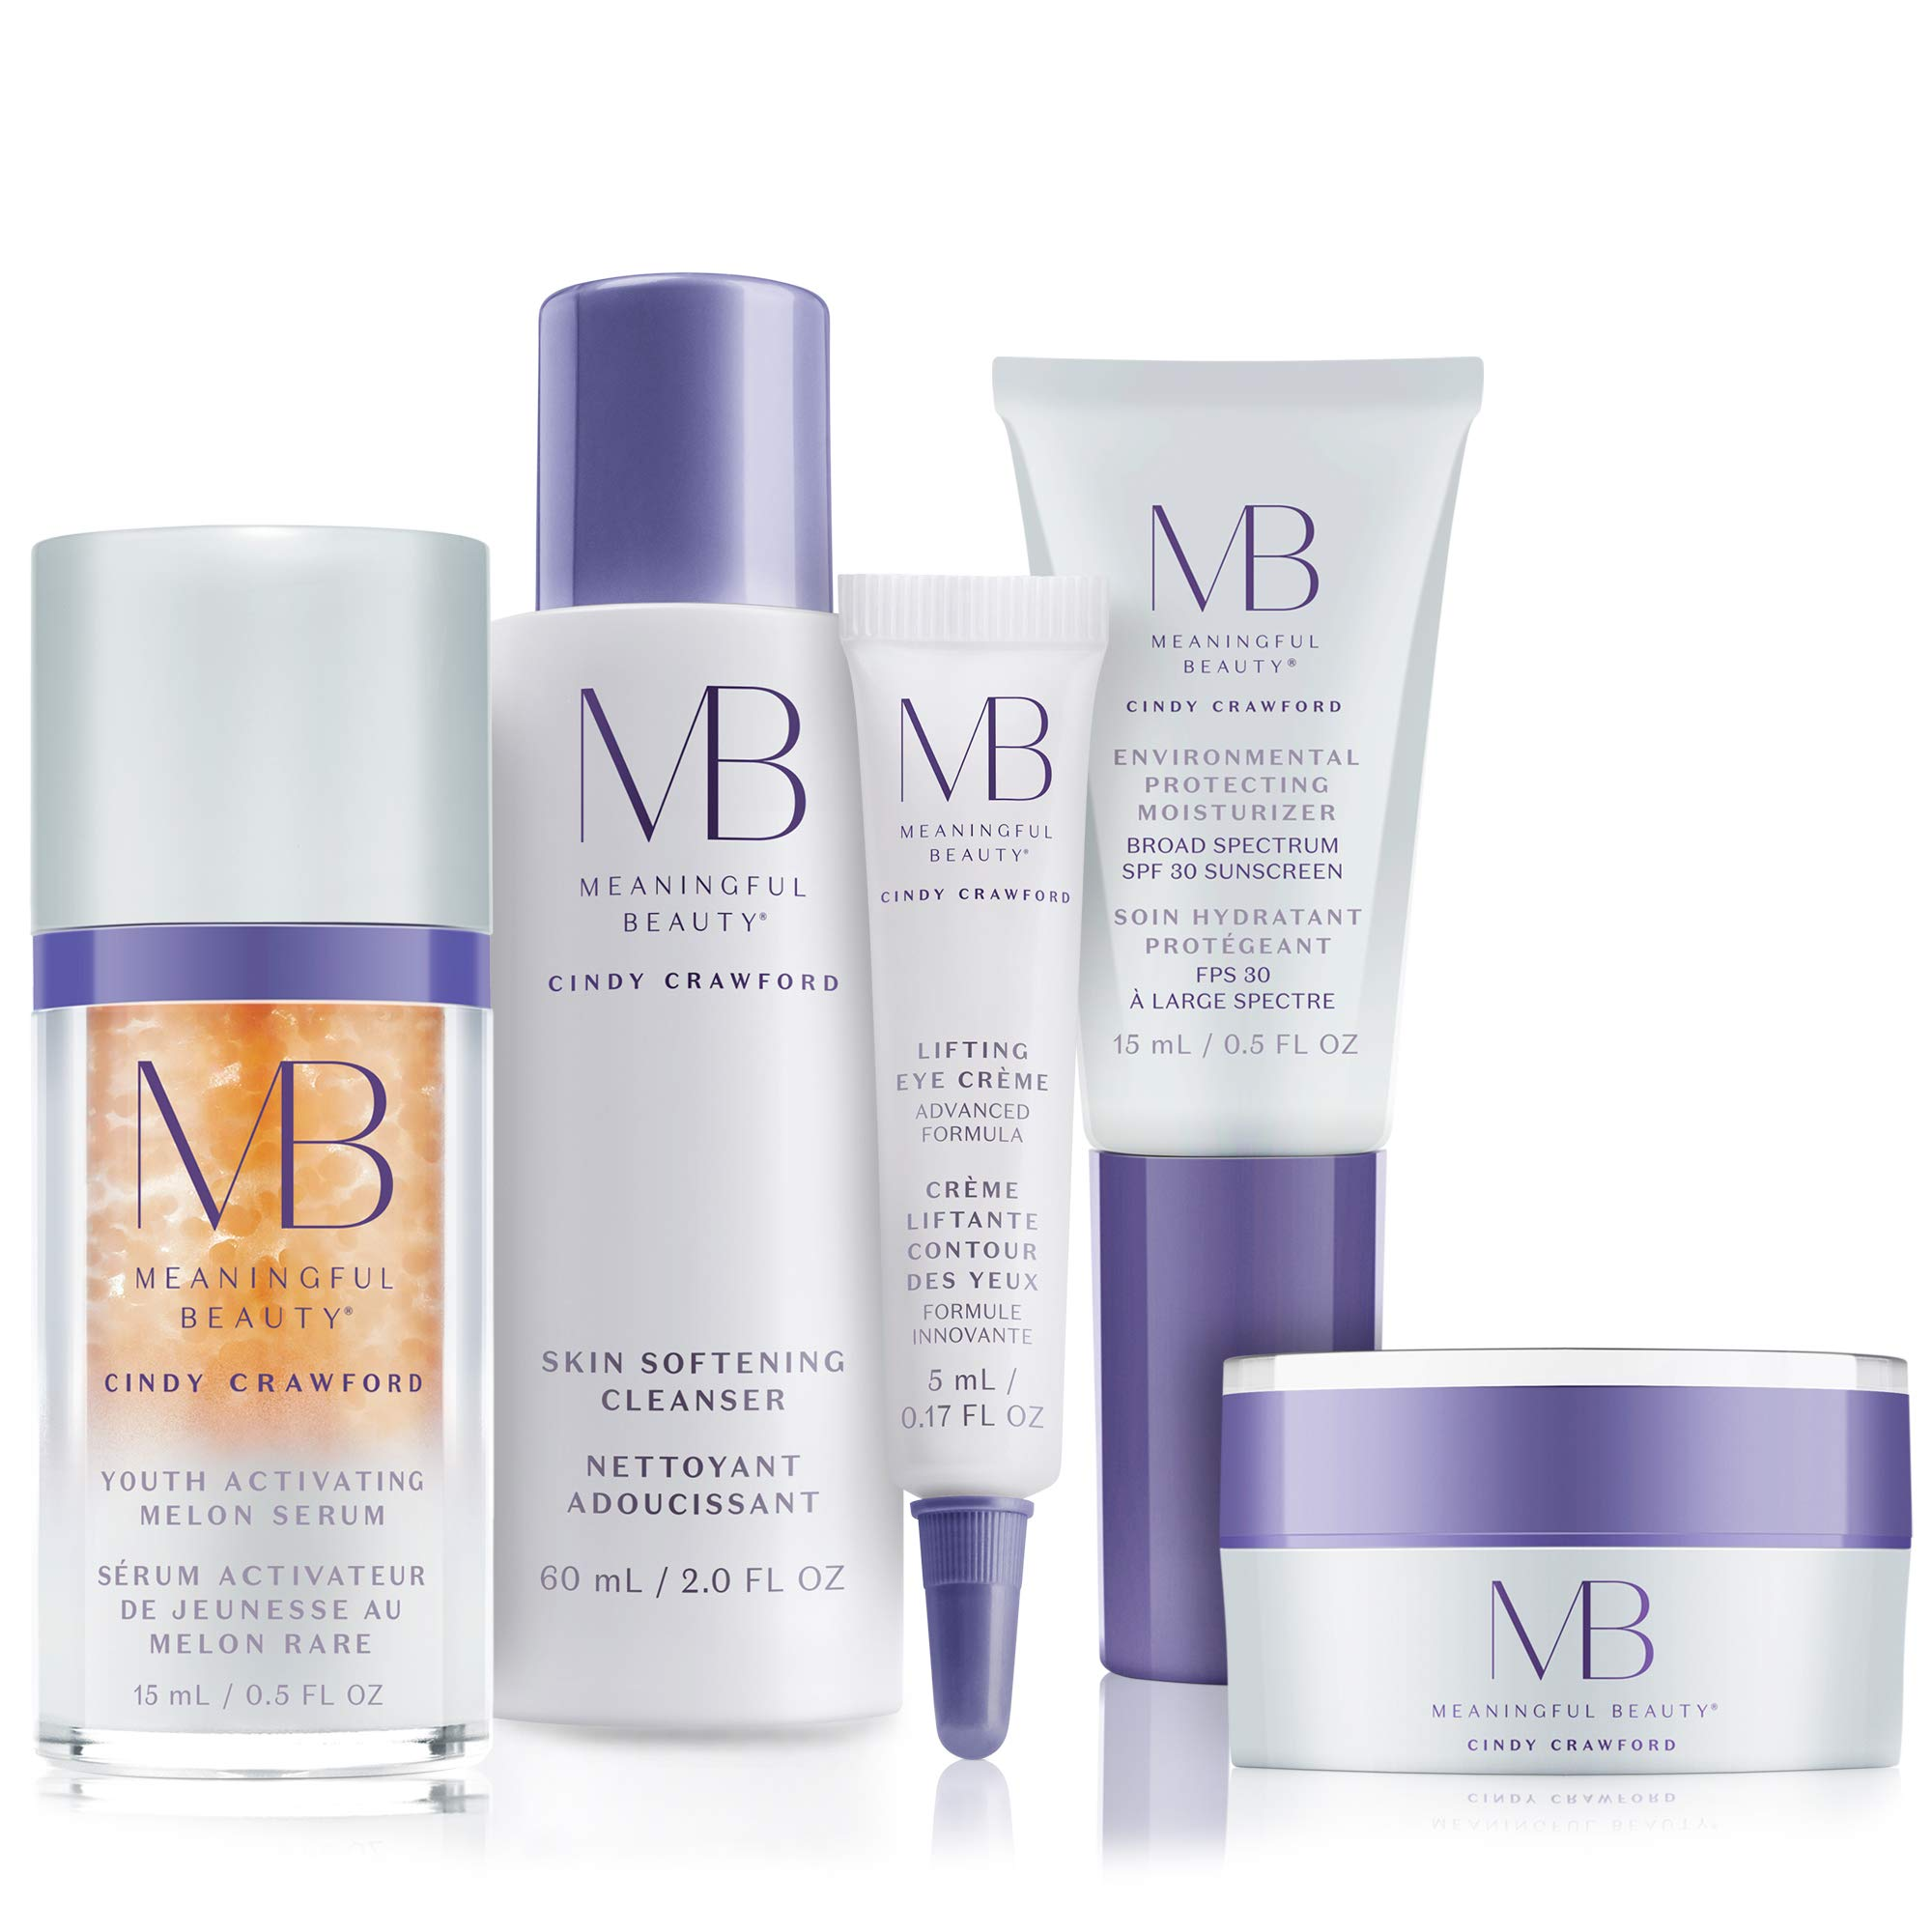 Meaningful Beauty - 5-Piece Anti-Aging Starter System - For Lifting, Firming, Fine lines & Wrinkles by Meaningful Beauty